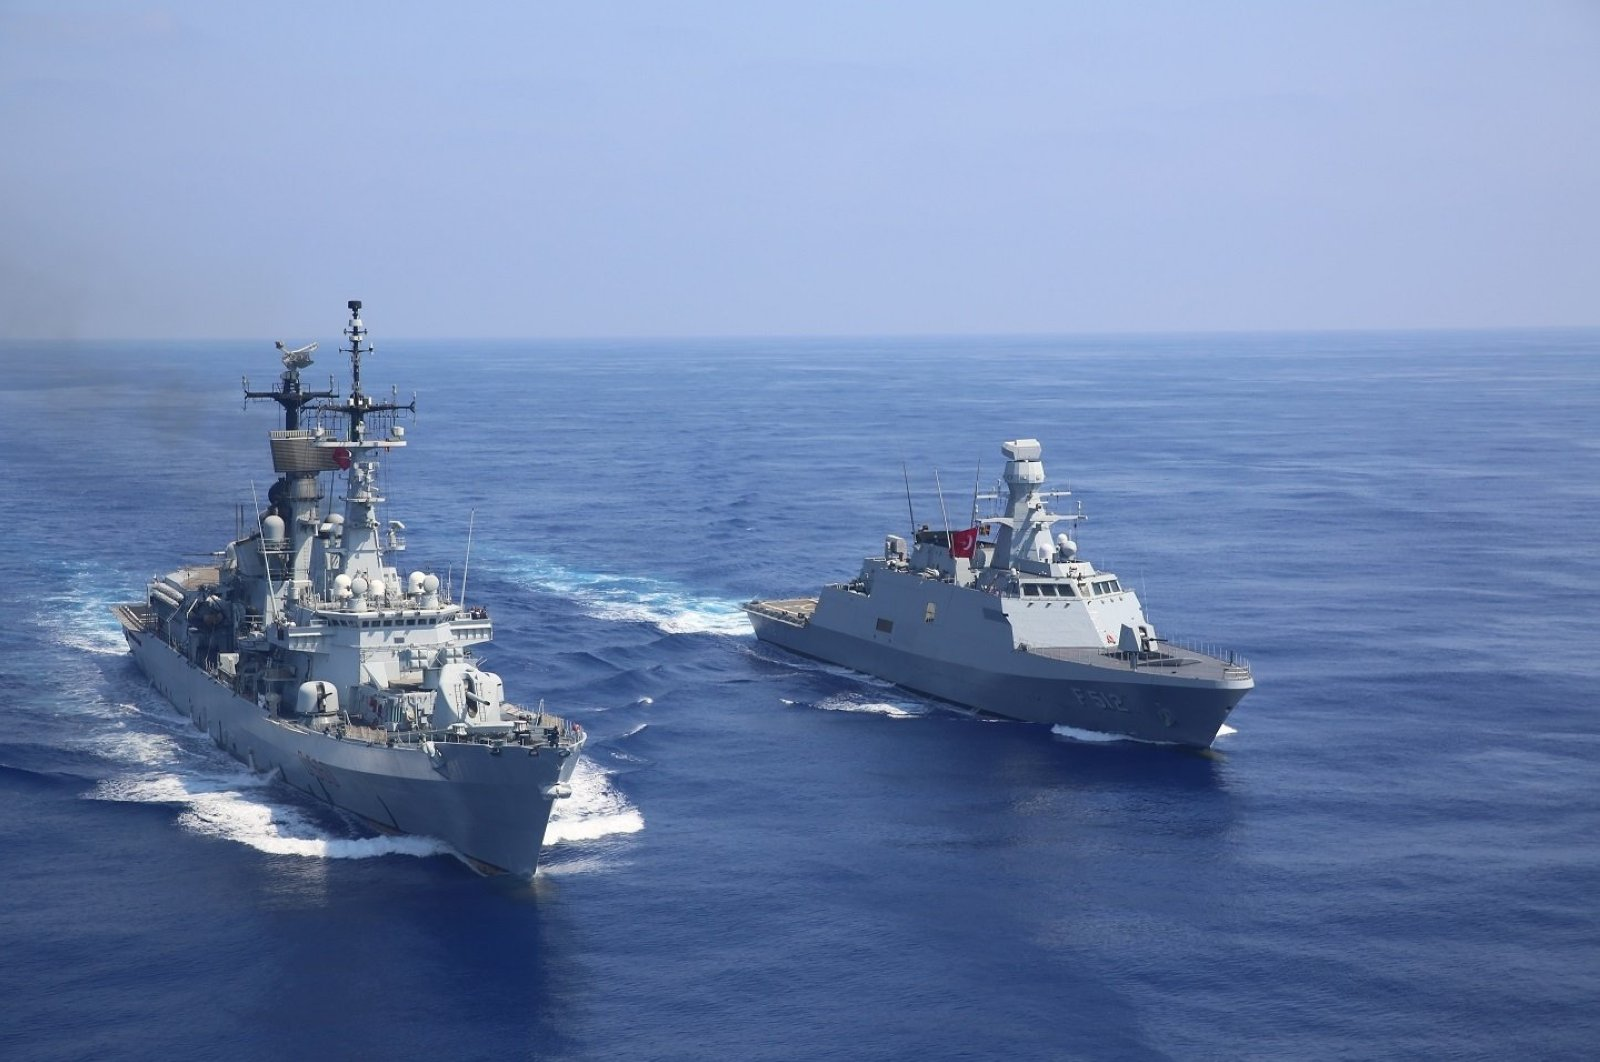 The Defense Ministry announced the conducting of transitional training in the Eastern Mediterranean with ally naval forces, including the Turkish frigate TCG Barbaros and the American destroyer USS Winston S. Churchill, Aug. 31, 2020 (DHA Photo)